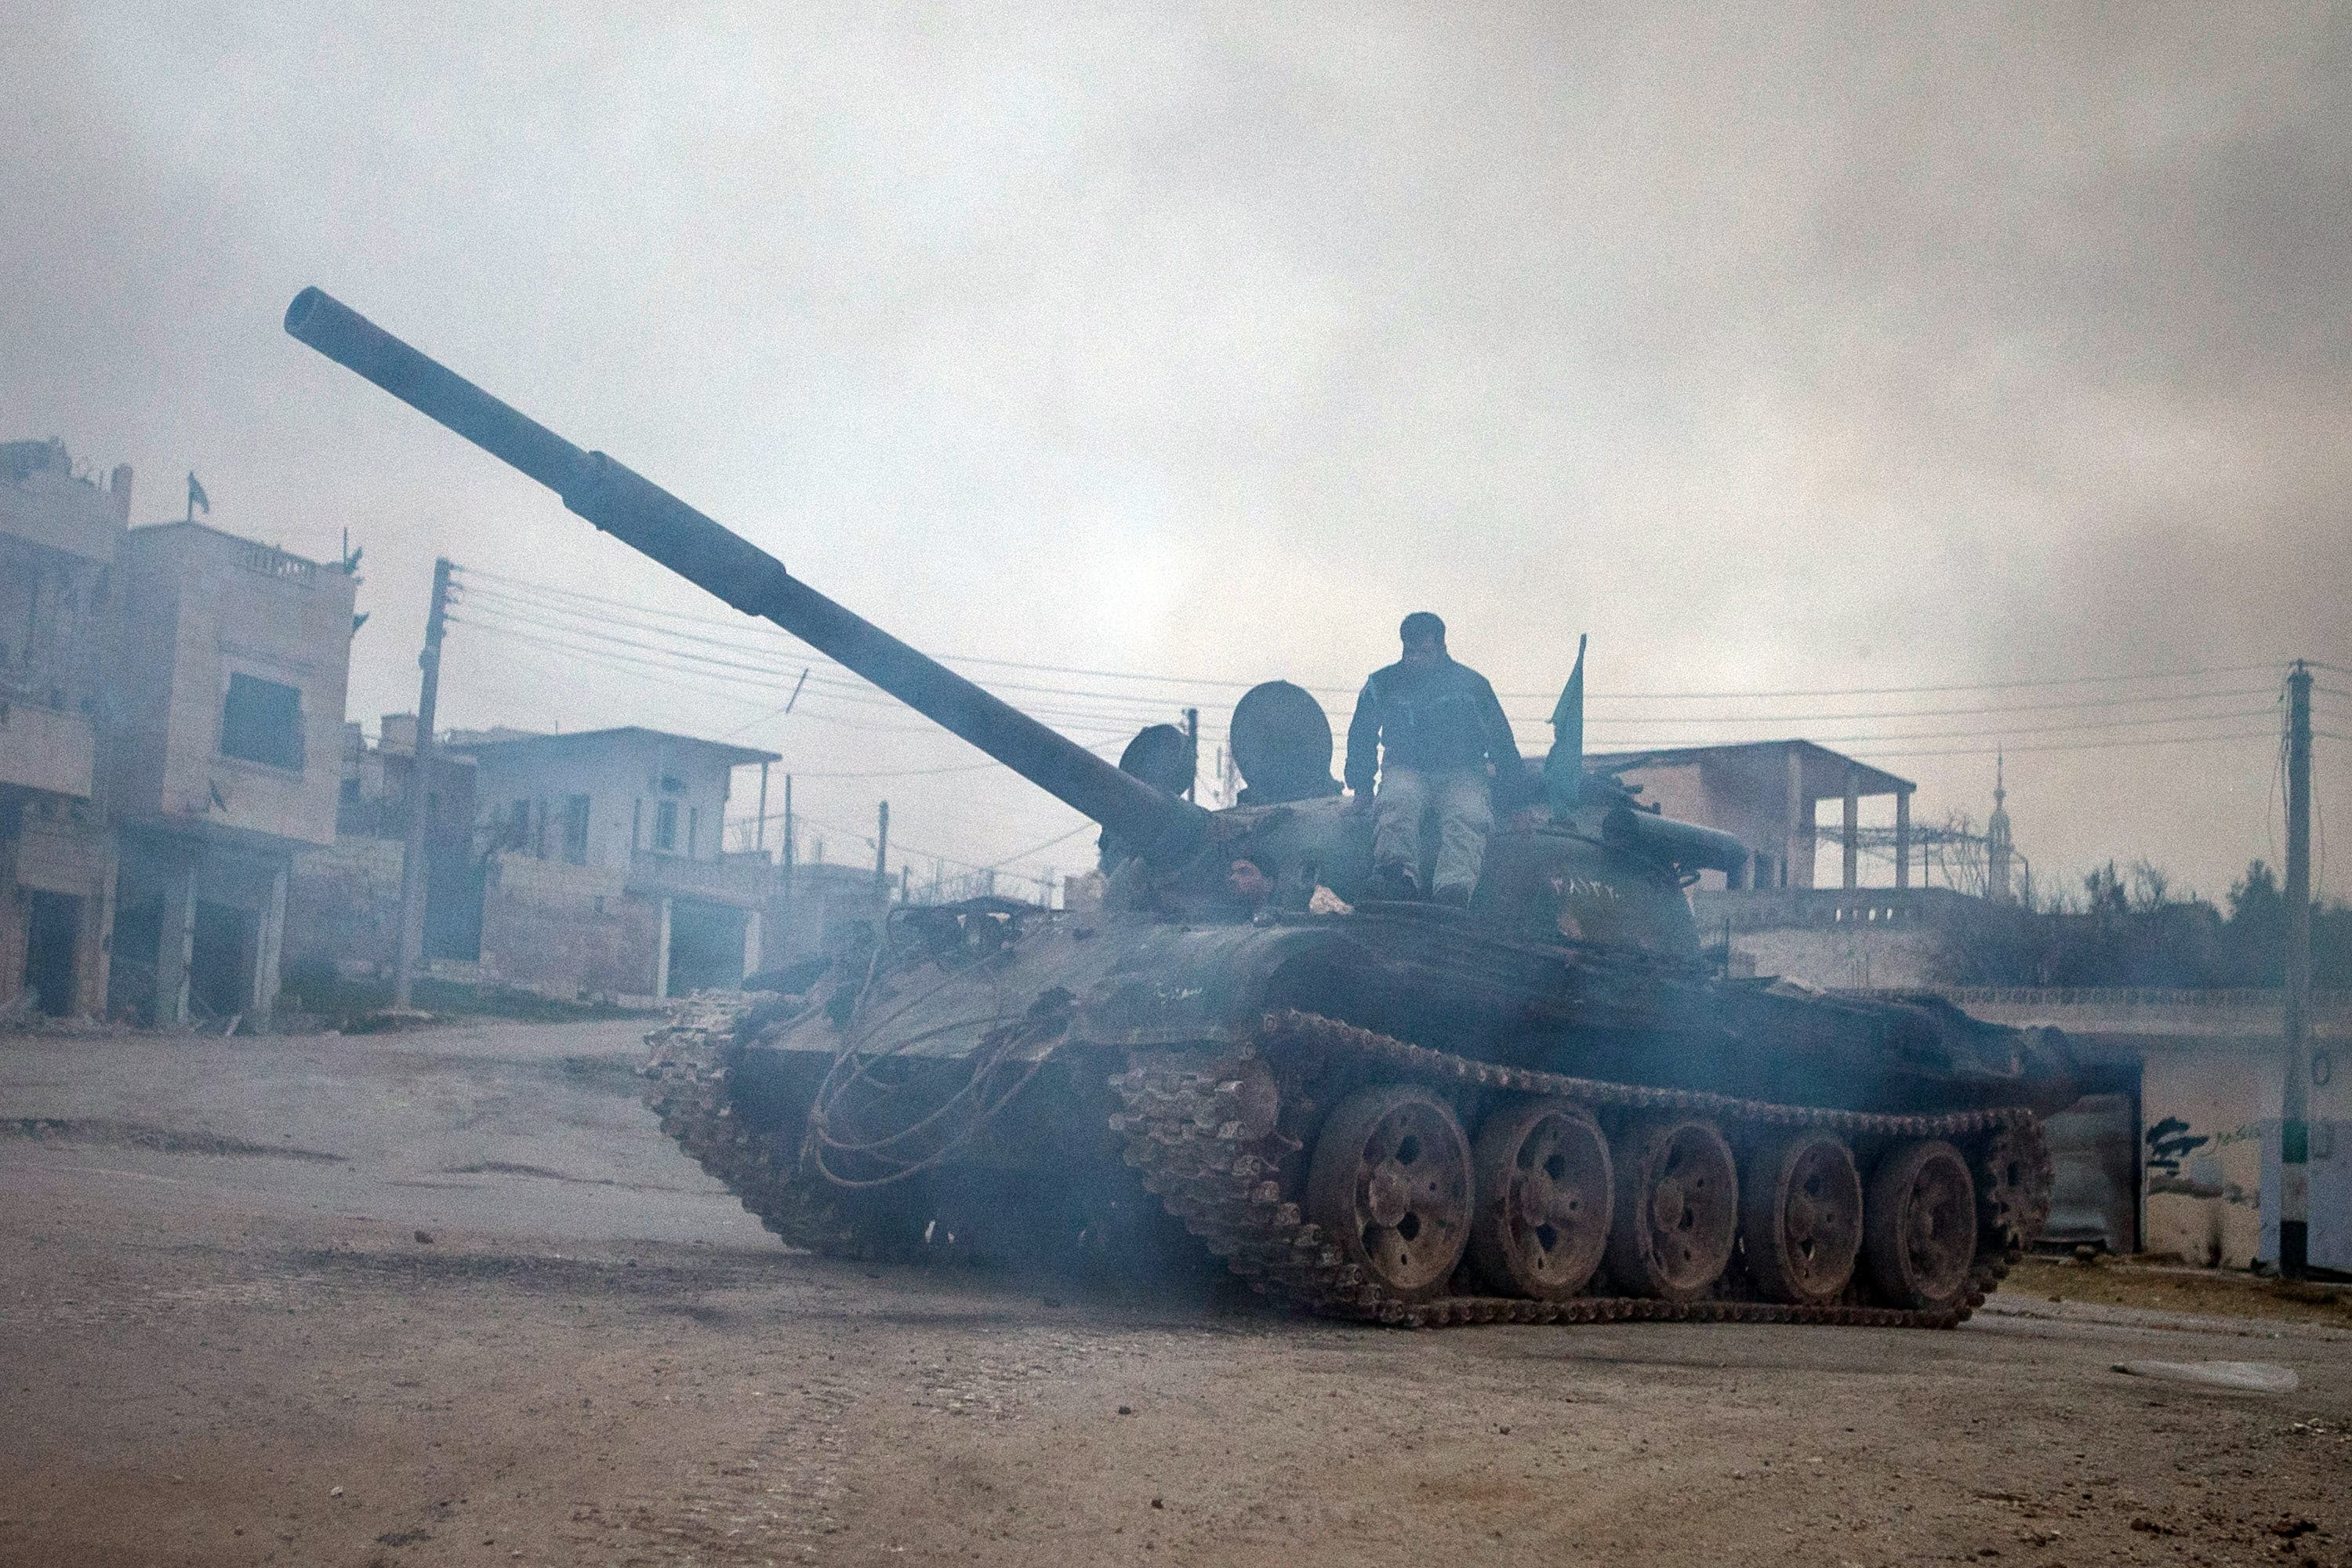 Syrian rebels drive a T-72 tank, captured from government forces two months ago, in the village of Kfarruma in the flashpoint Syrian province of Idlib near the border with Turkey, on Monday (AFP Photo/Daniel Leal-Olivas)